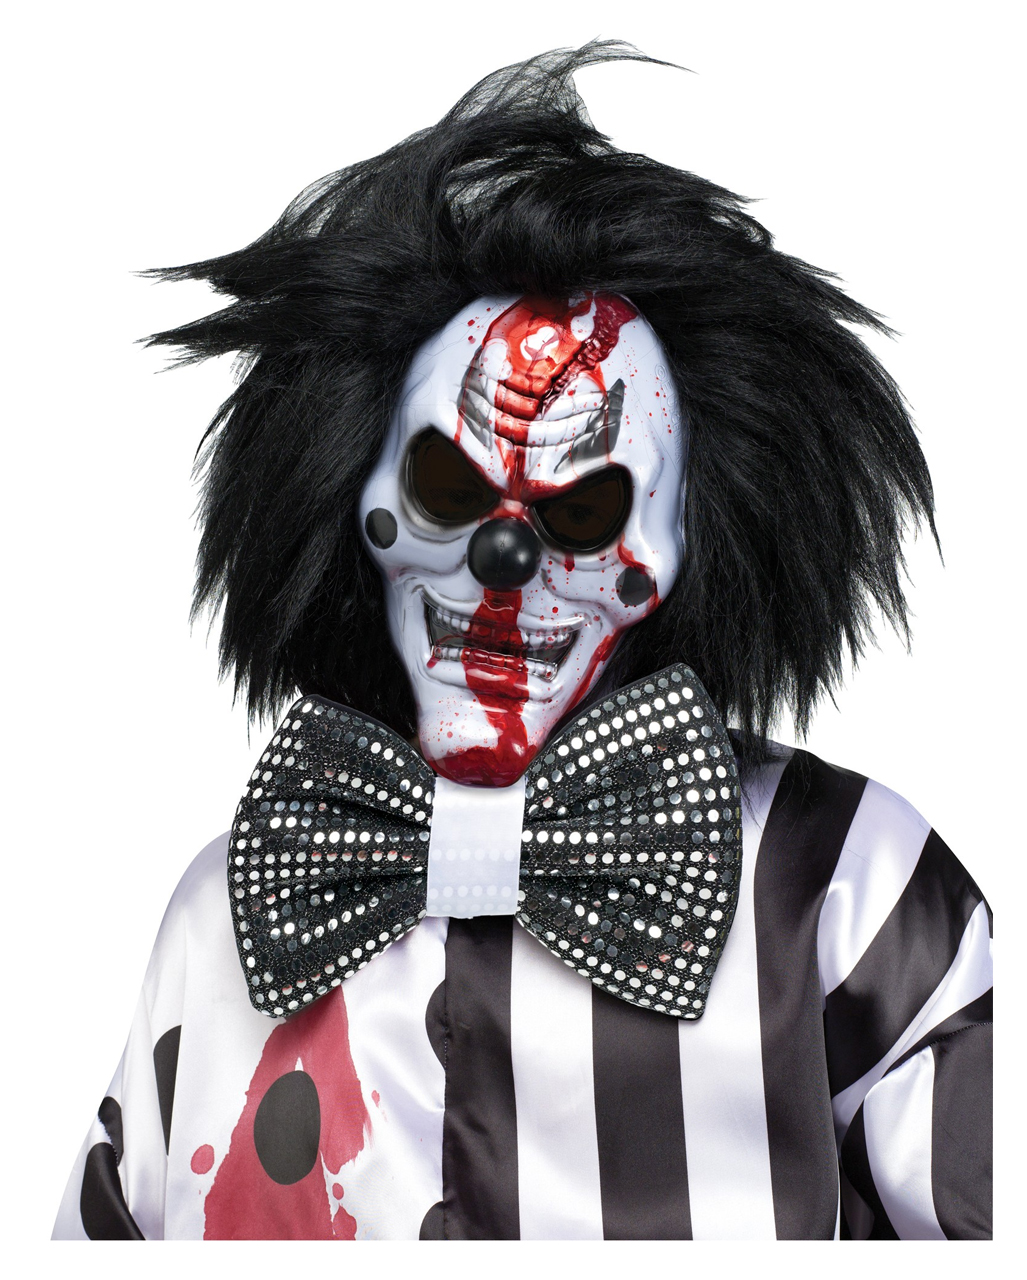 Huge selection of Halloween horror props. From large, realistic animated life size figures to creepy spiders. Make your Halloween party unforgettable. Buy now.